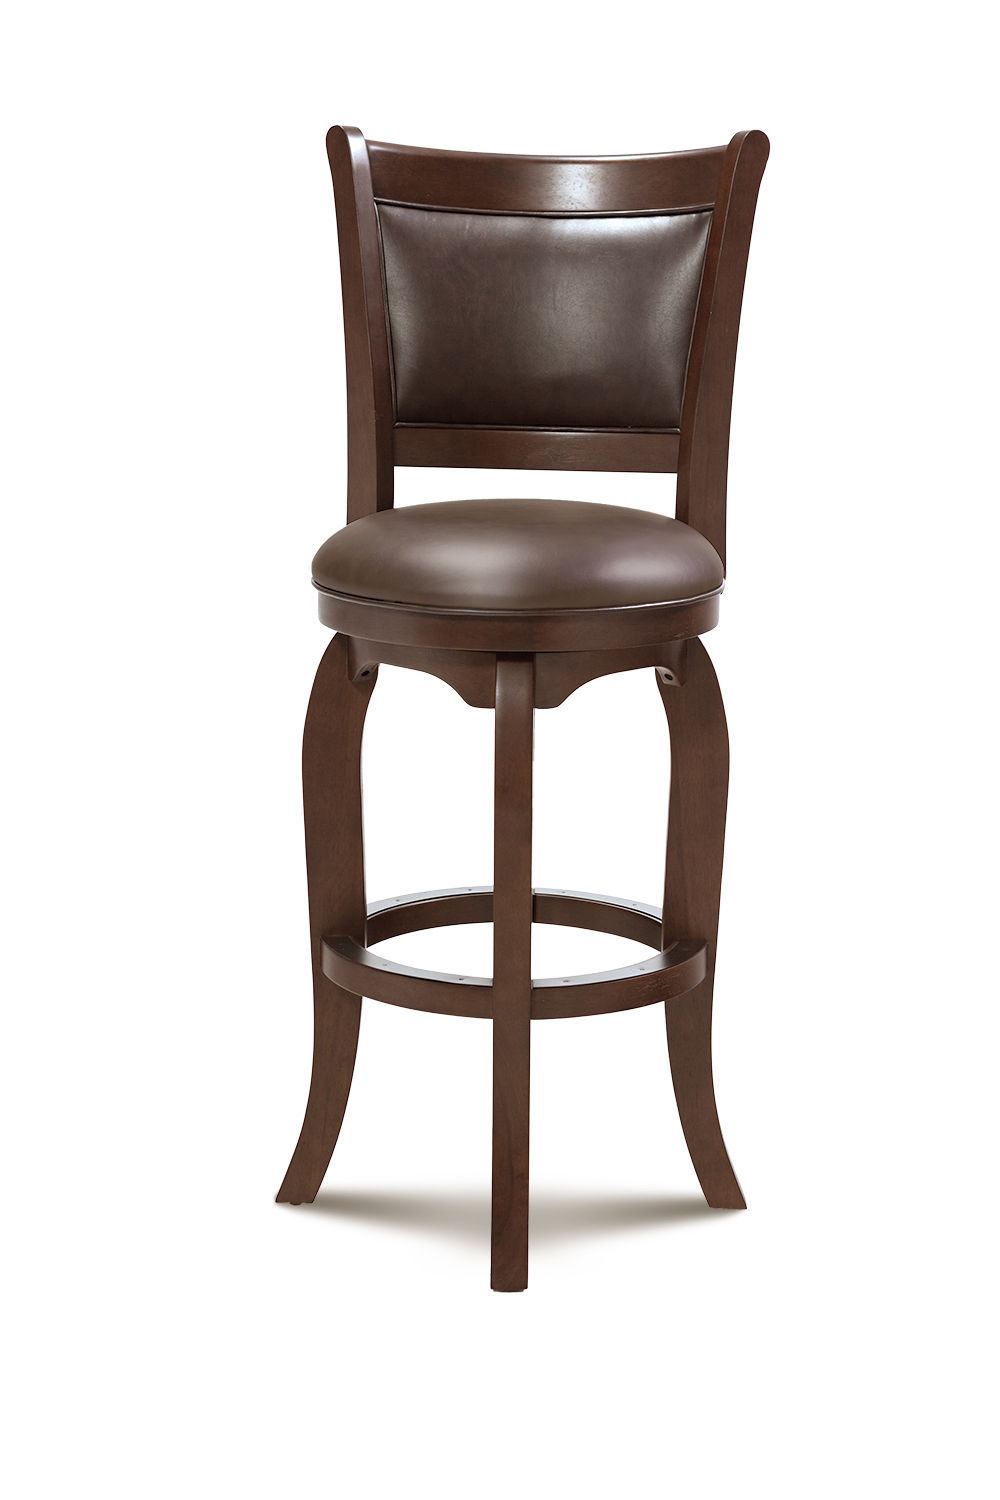 """SET OF 2 BRIGHTON 27"""" COUNTER-HEIGHT SWIVEL BARSTOOL CHAIR IN WARM CHERRY"""